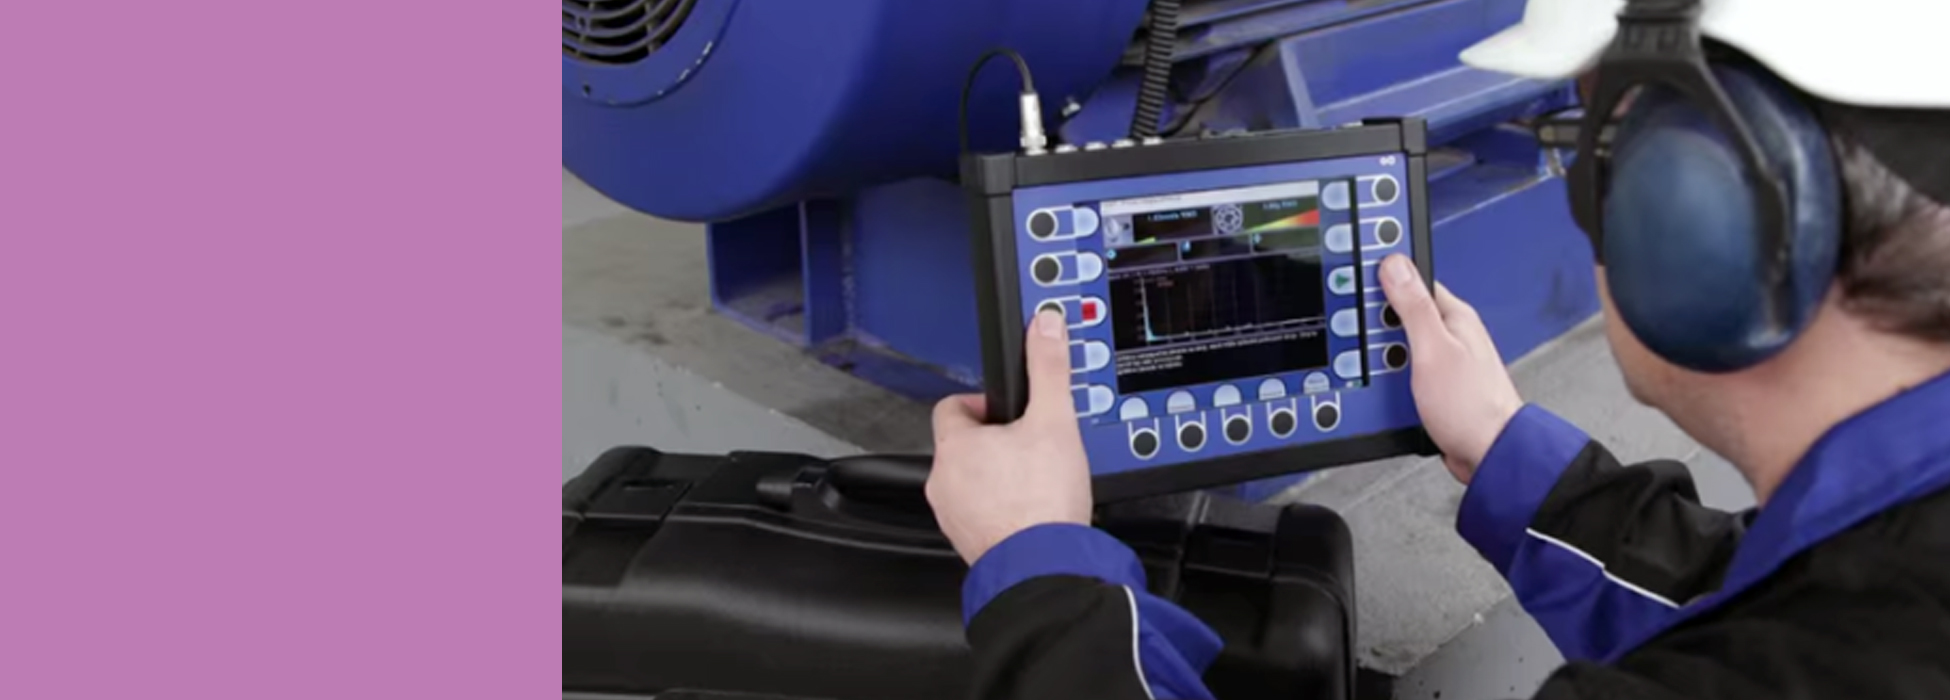 Vibration Analysis Services